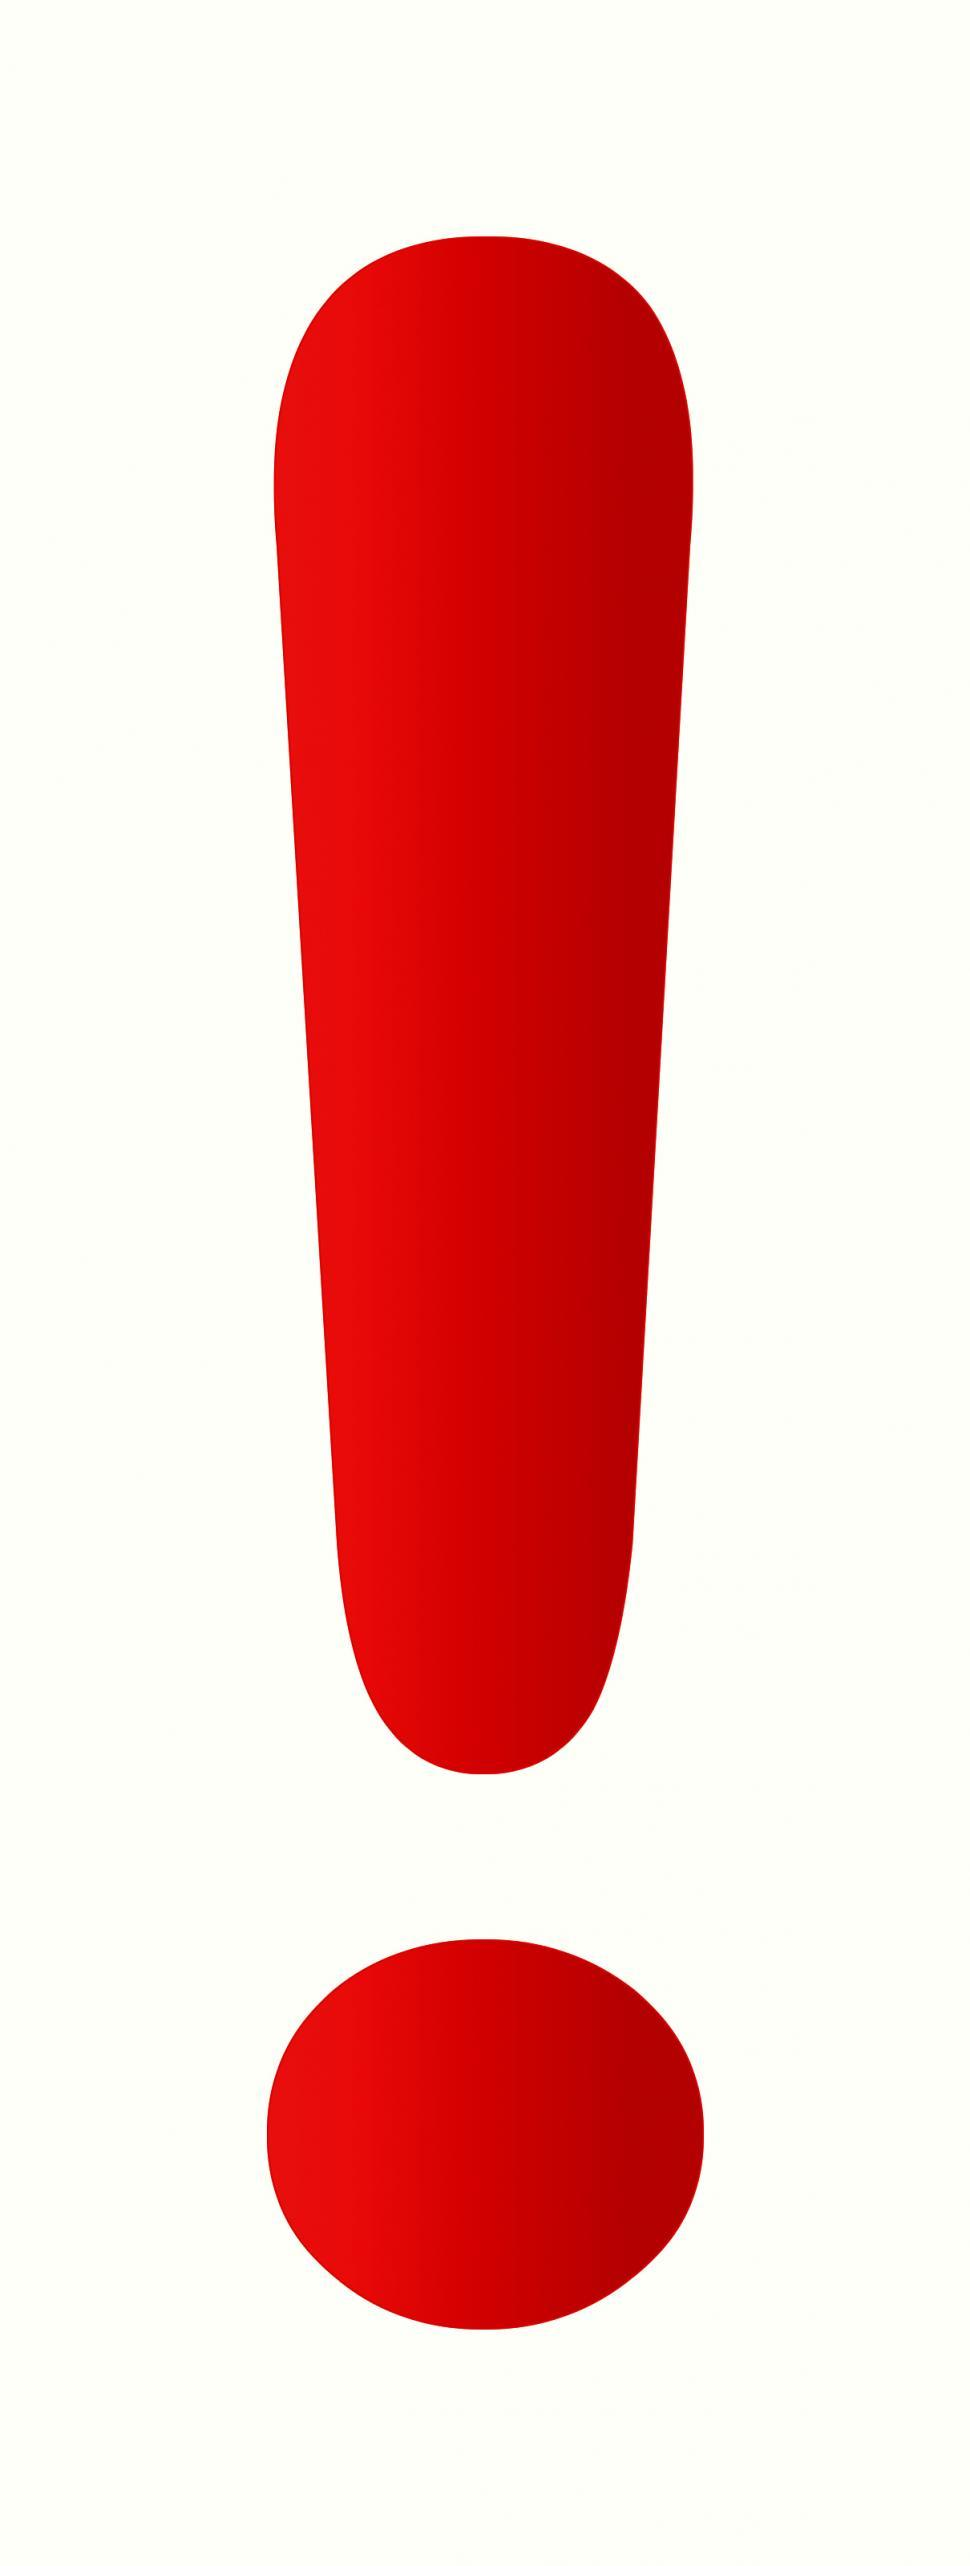 970x2566 Free Stock Photo Of Red Exclamation Mark